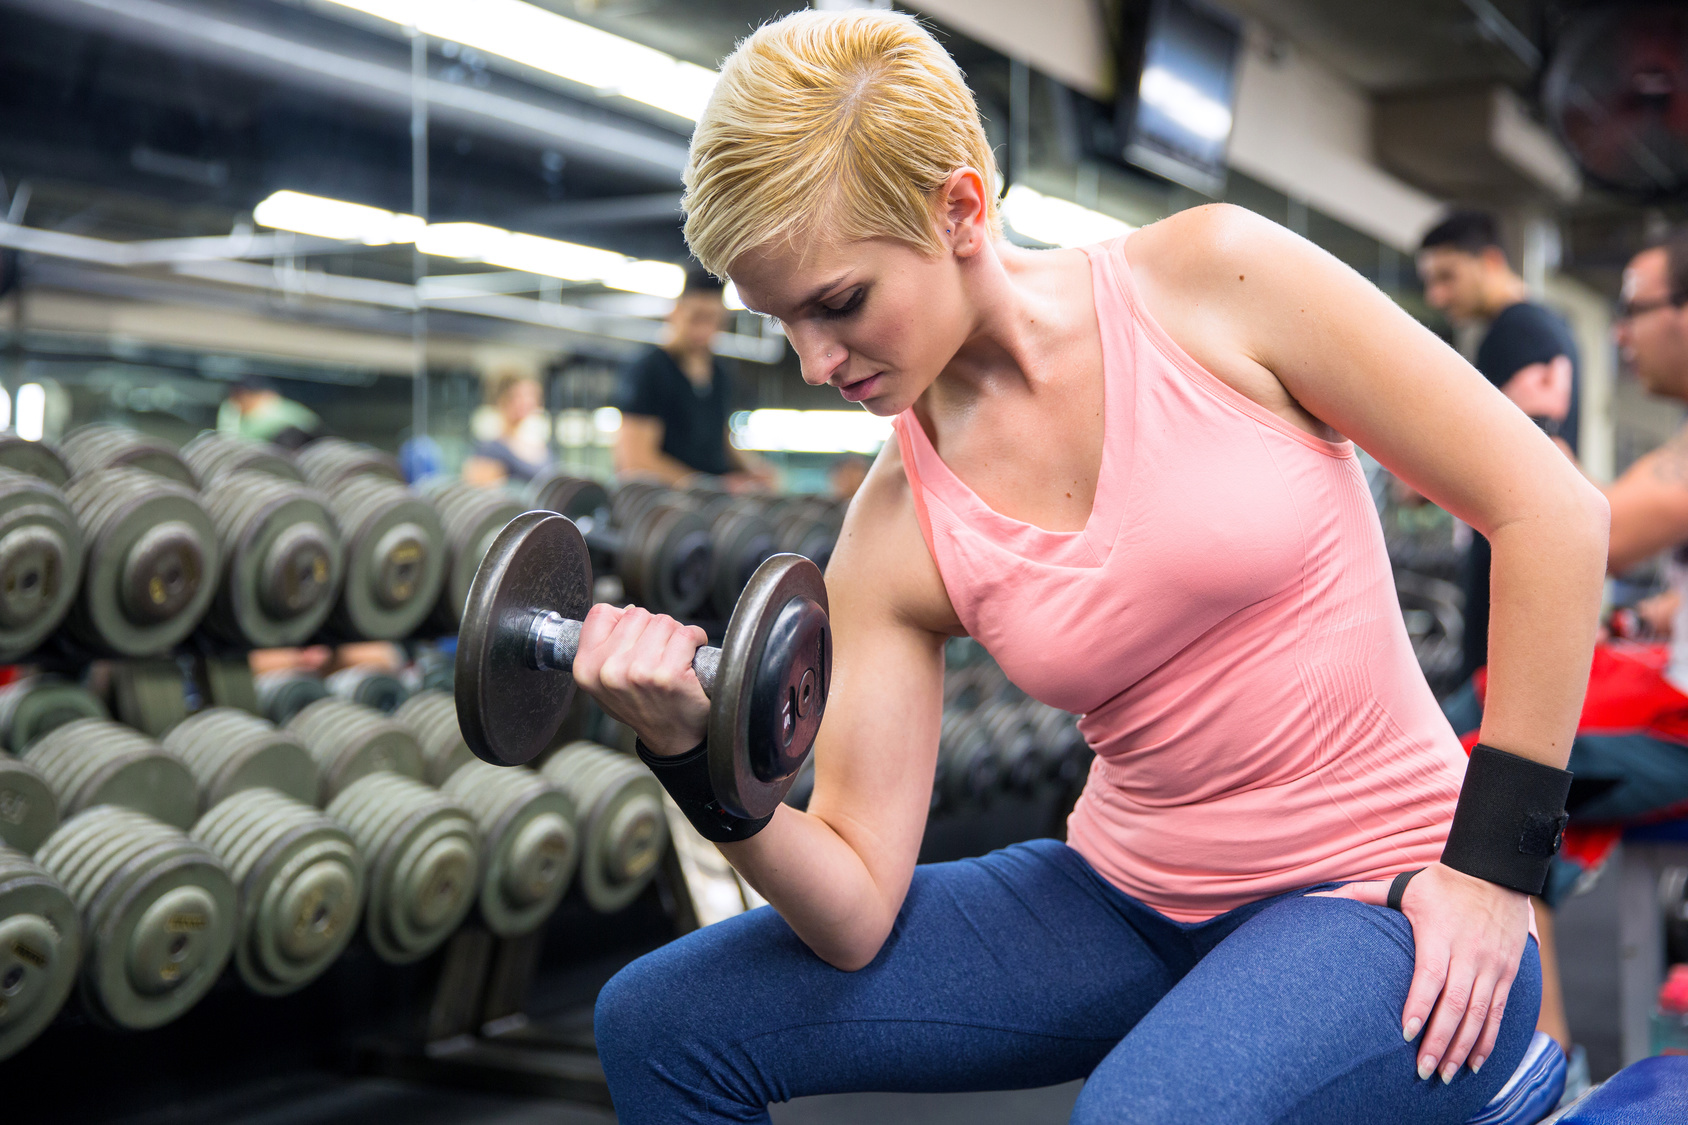 should women train and lift weights like men